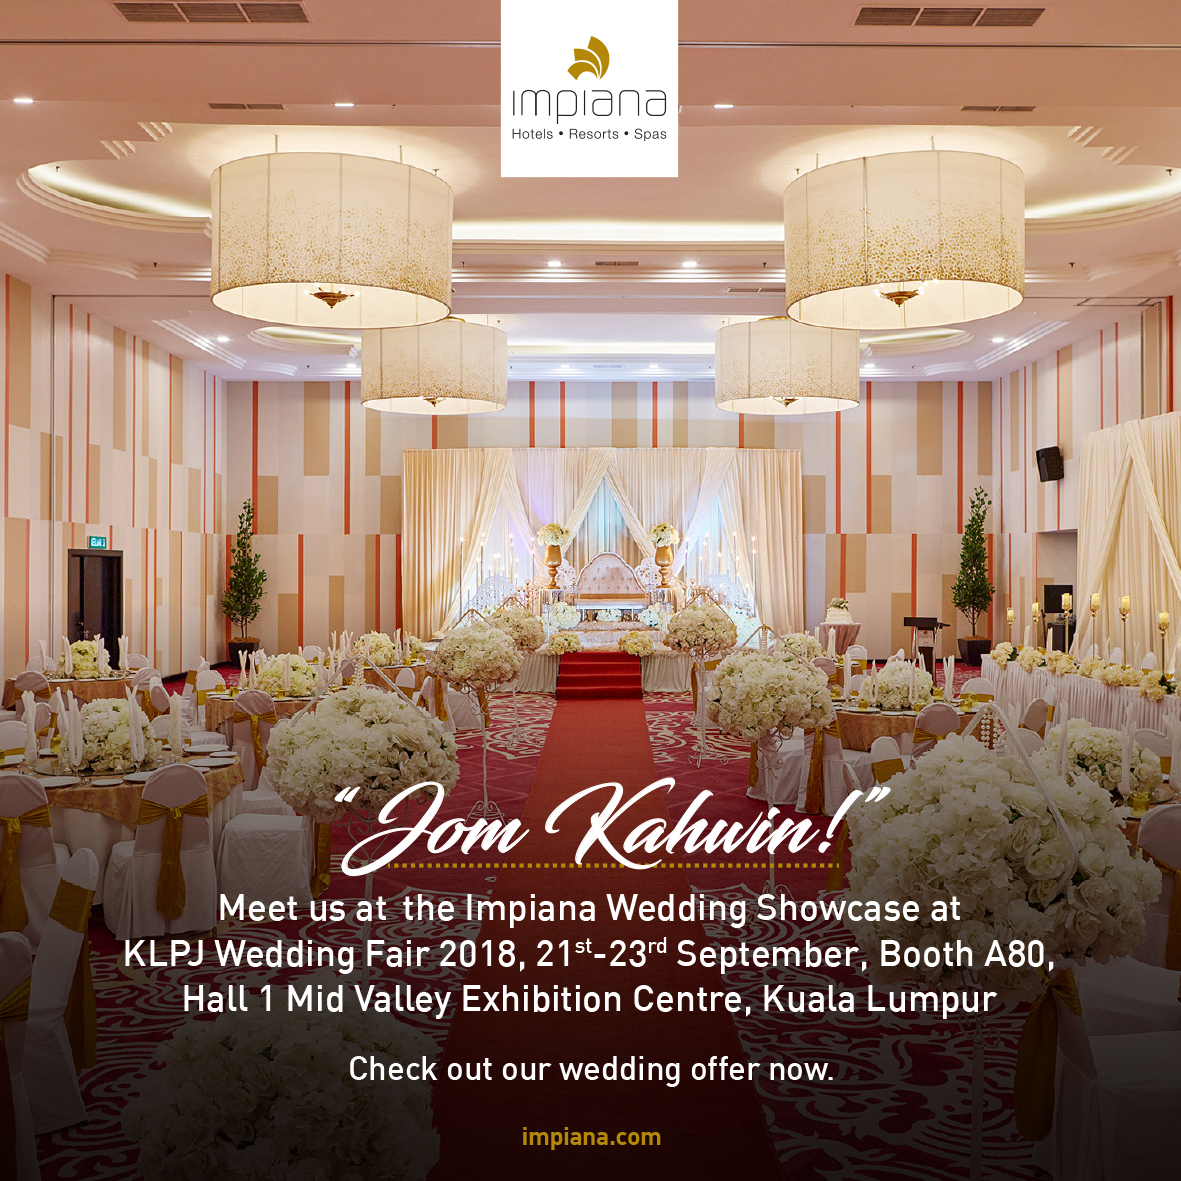 Wedding packages at Impiana Hotel Ipoh! - Impiana Hotel Ipoh